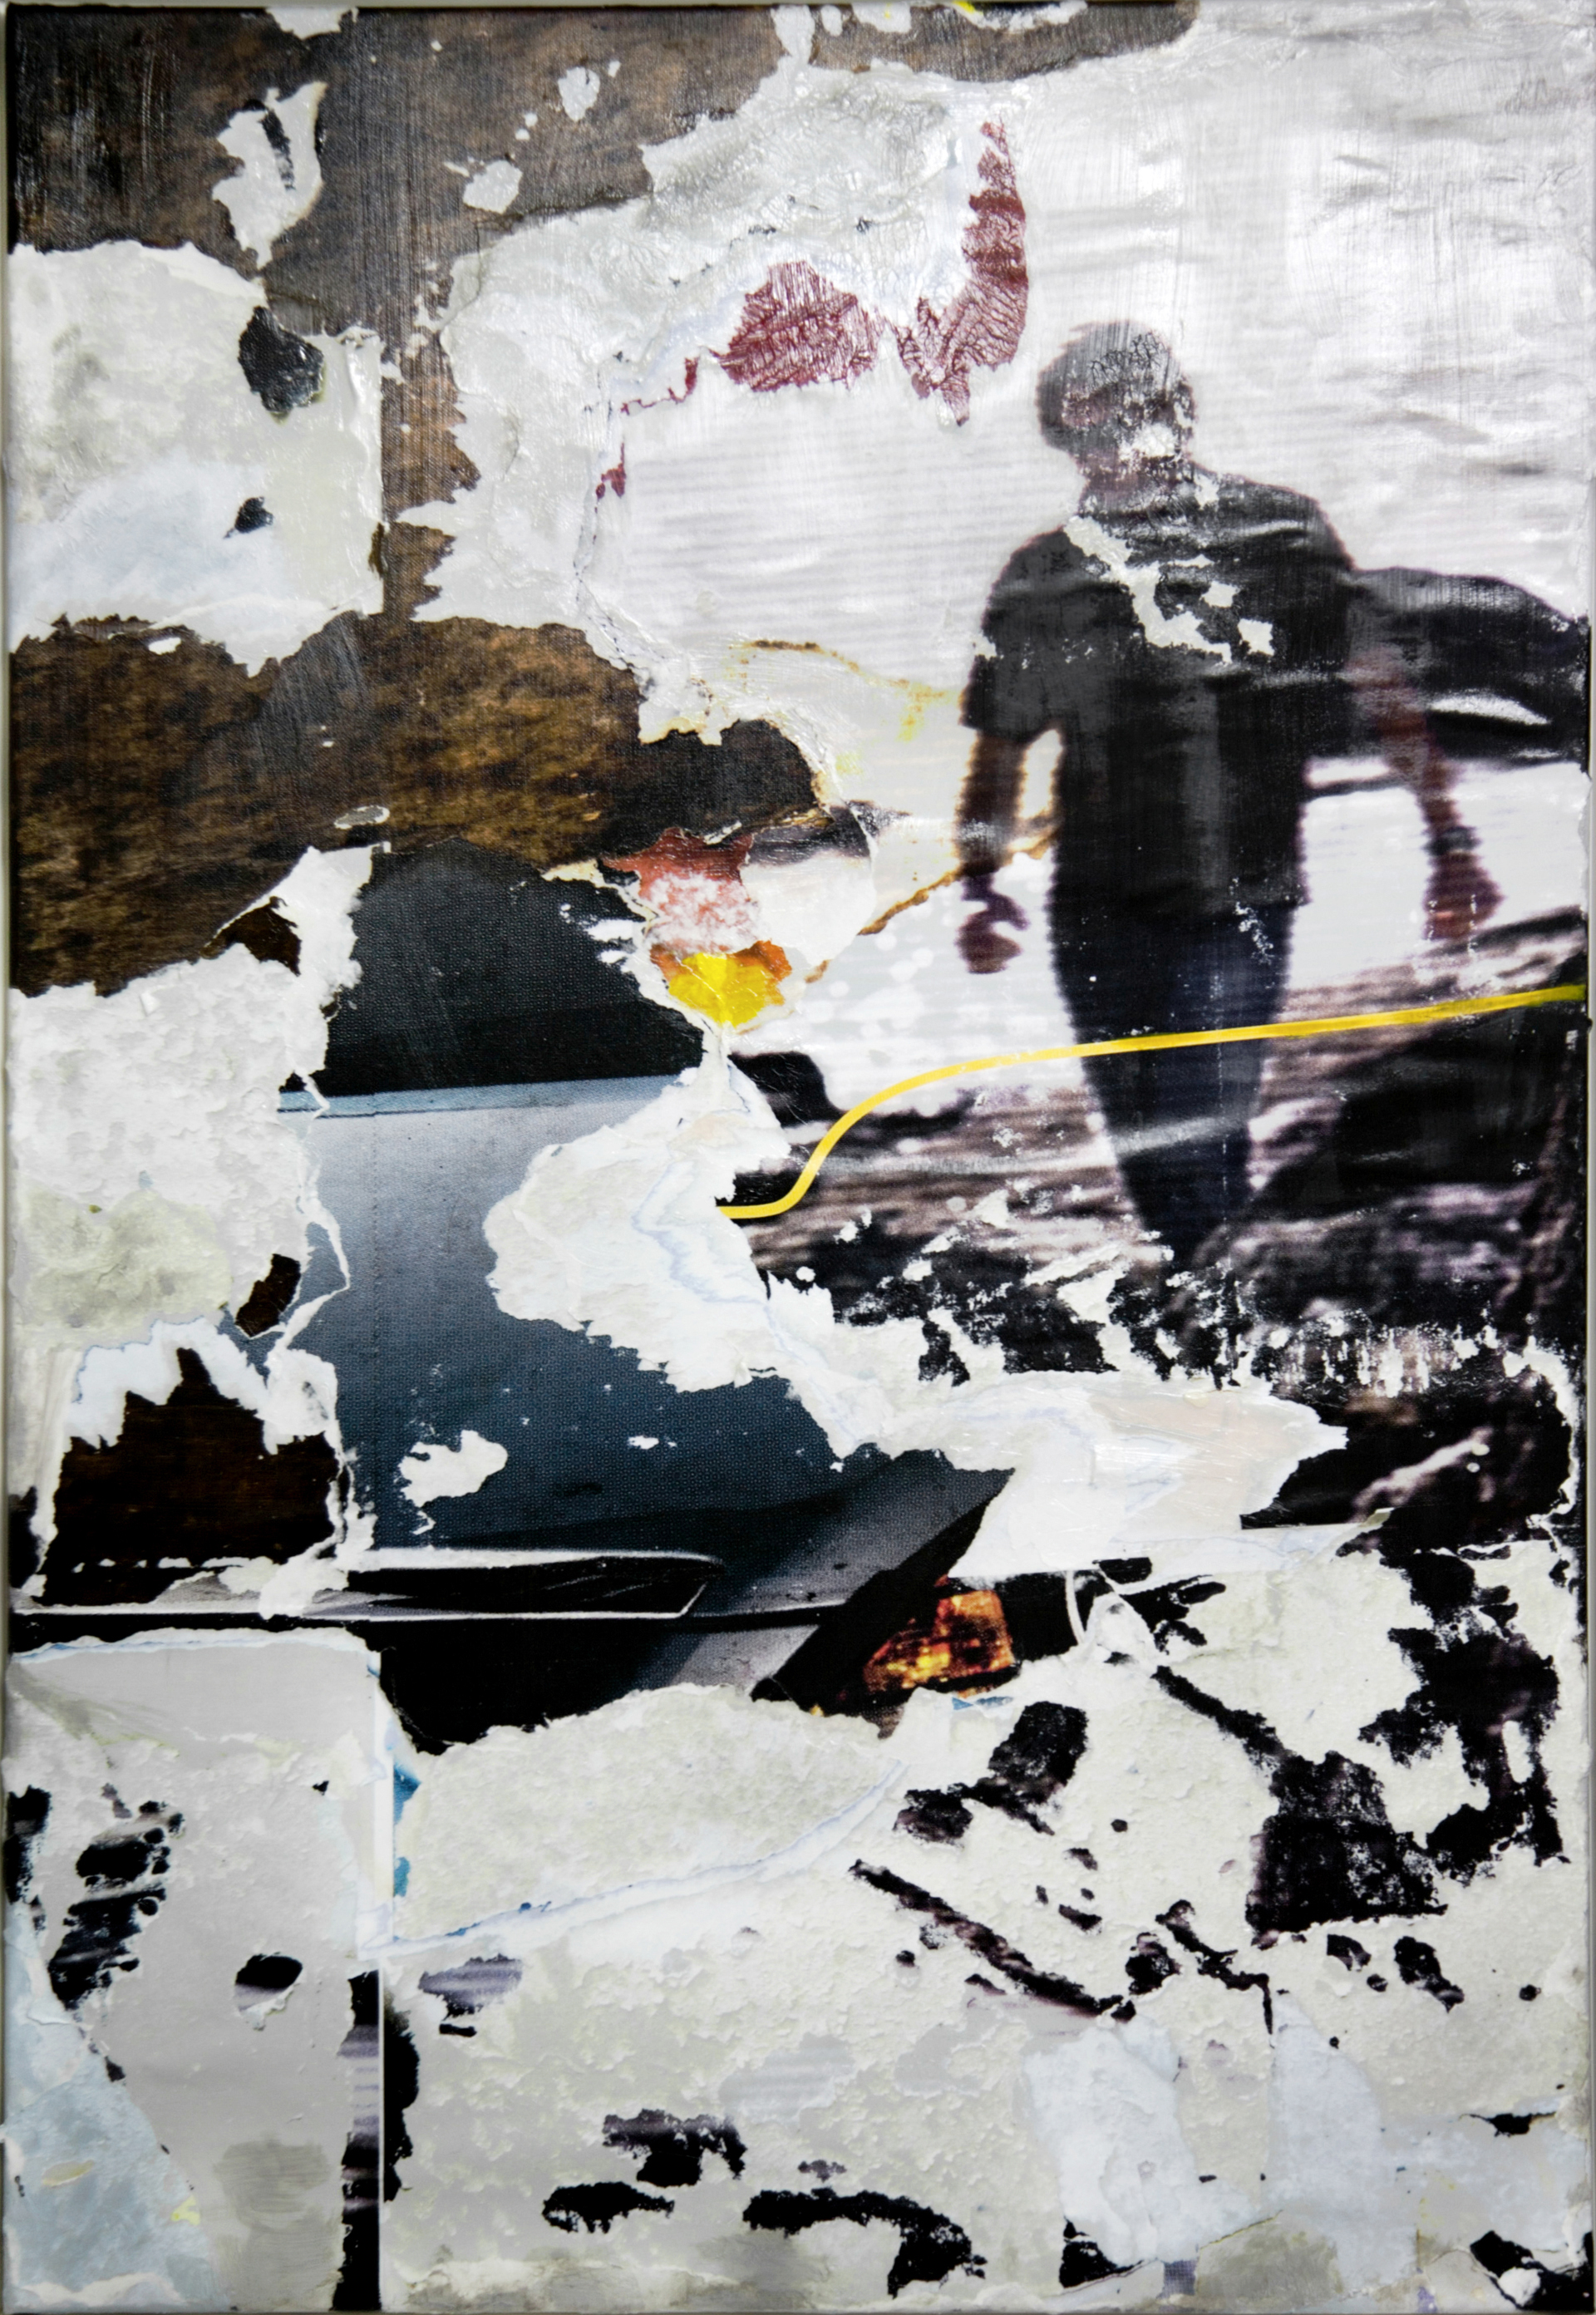 decollage_0432 © 2011, 70x100 cm, canvas, affichepaper, acryllic, clear laquer Copyright by the artist. Courtesy of private collection, Berlin/Germany